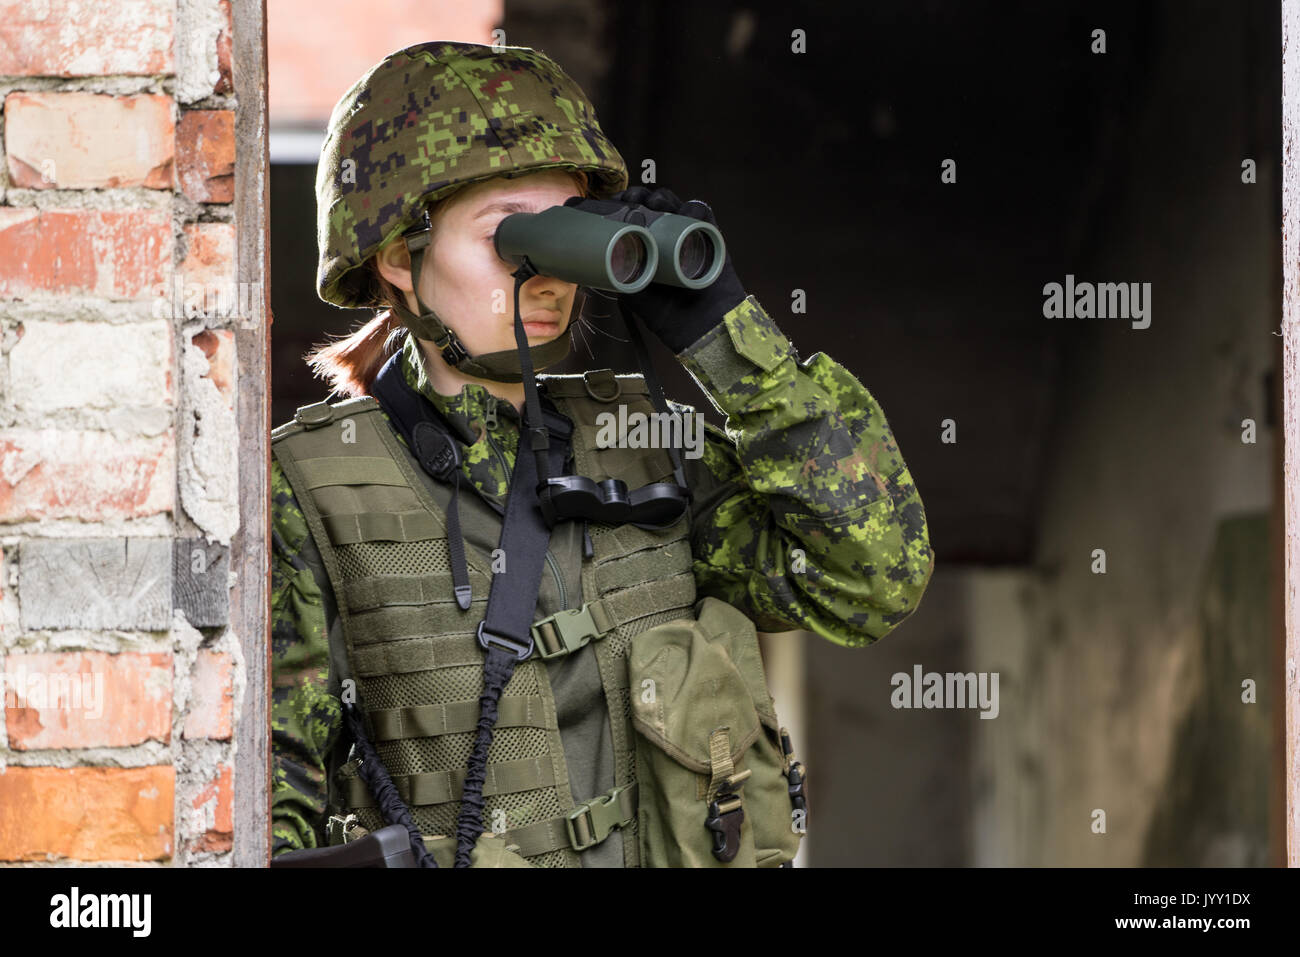 Portrait of armed woman with camouflage. Young female soldier observe with binoculars. Child soldier with gun in war, house ruins background.  Militar - Stock Image